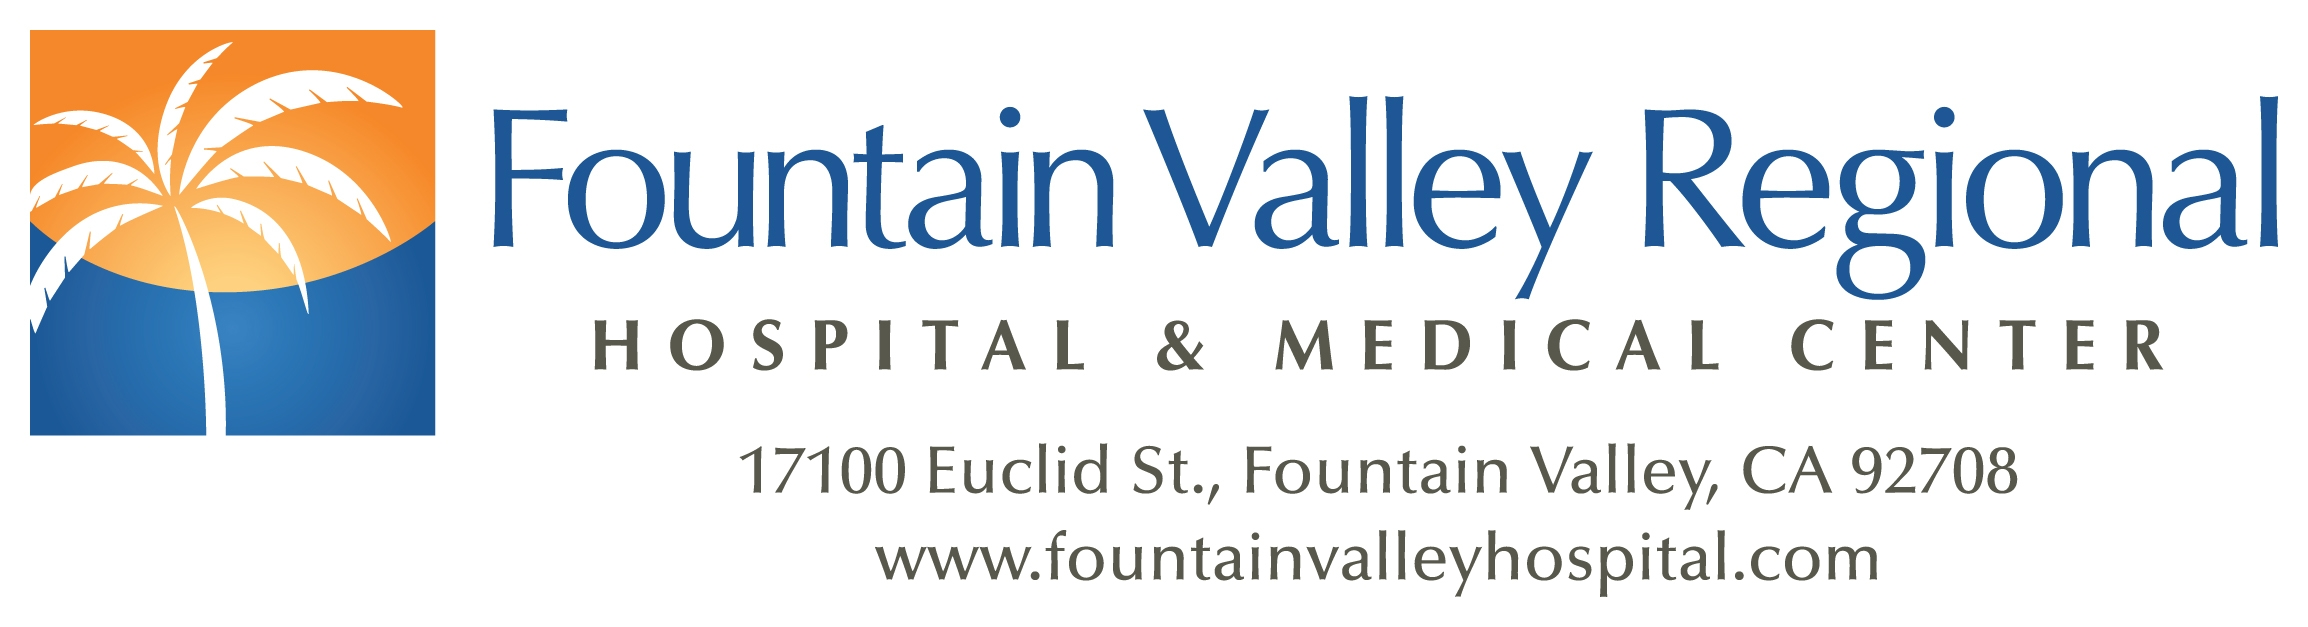 fountainvalley logo